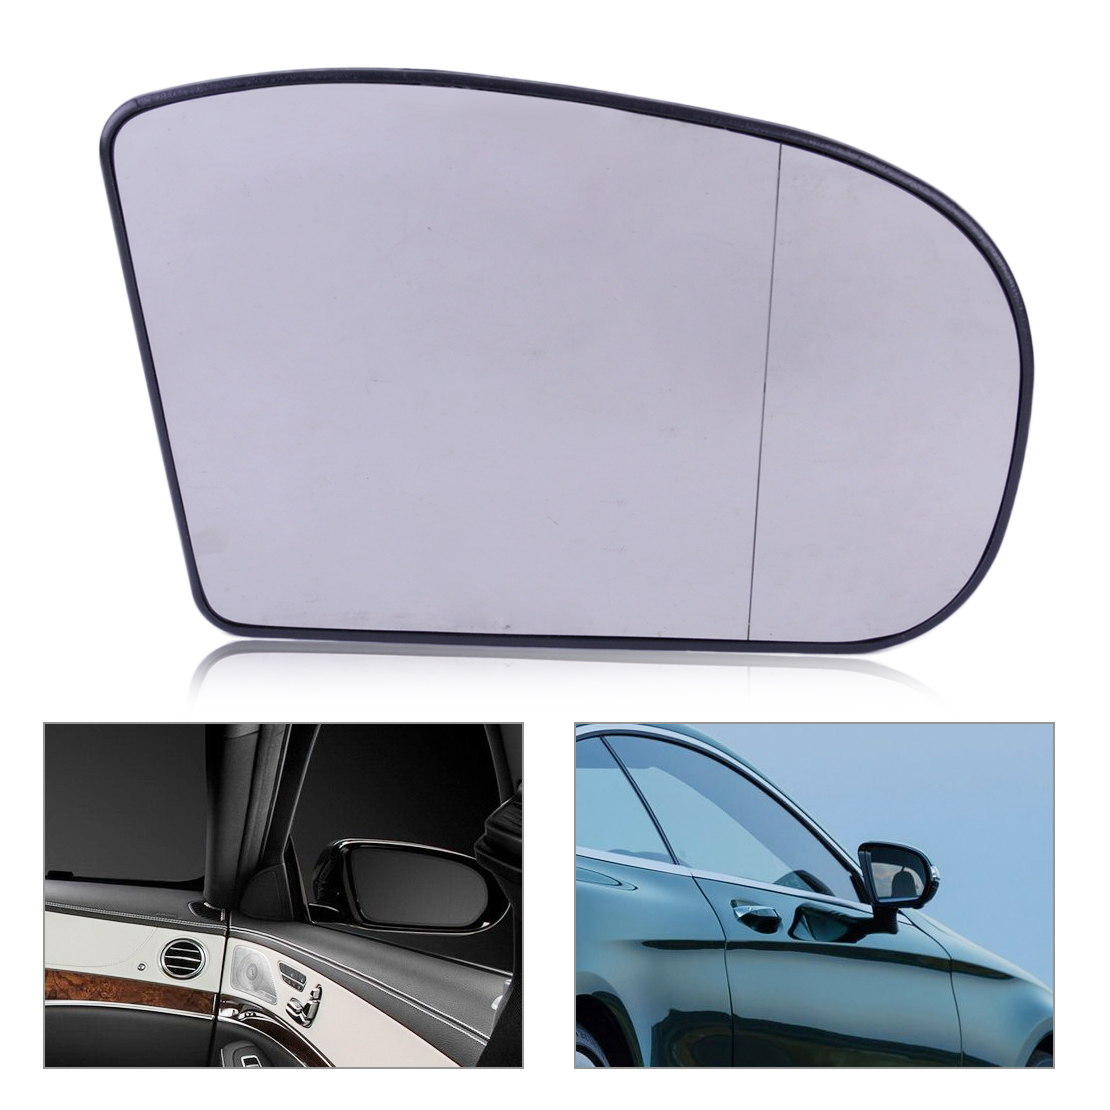 beler Right Heated Door Mirror Glass Aspherical Wide Angle Fit For Mercedes E class C Class W211 W203 2038100221 203 810 02 21